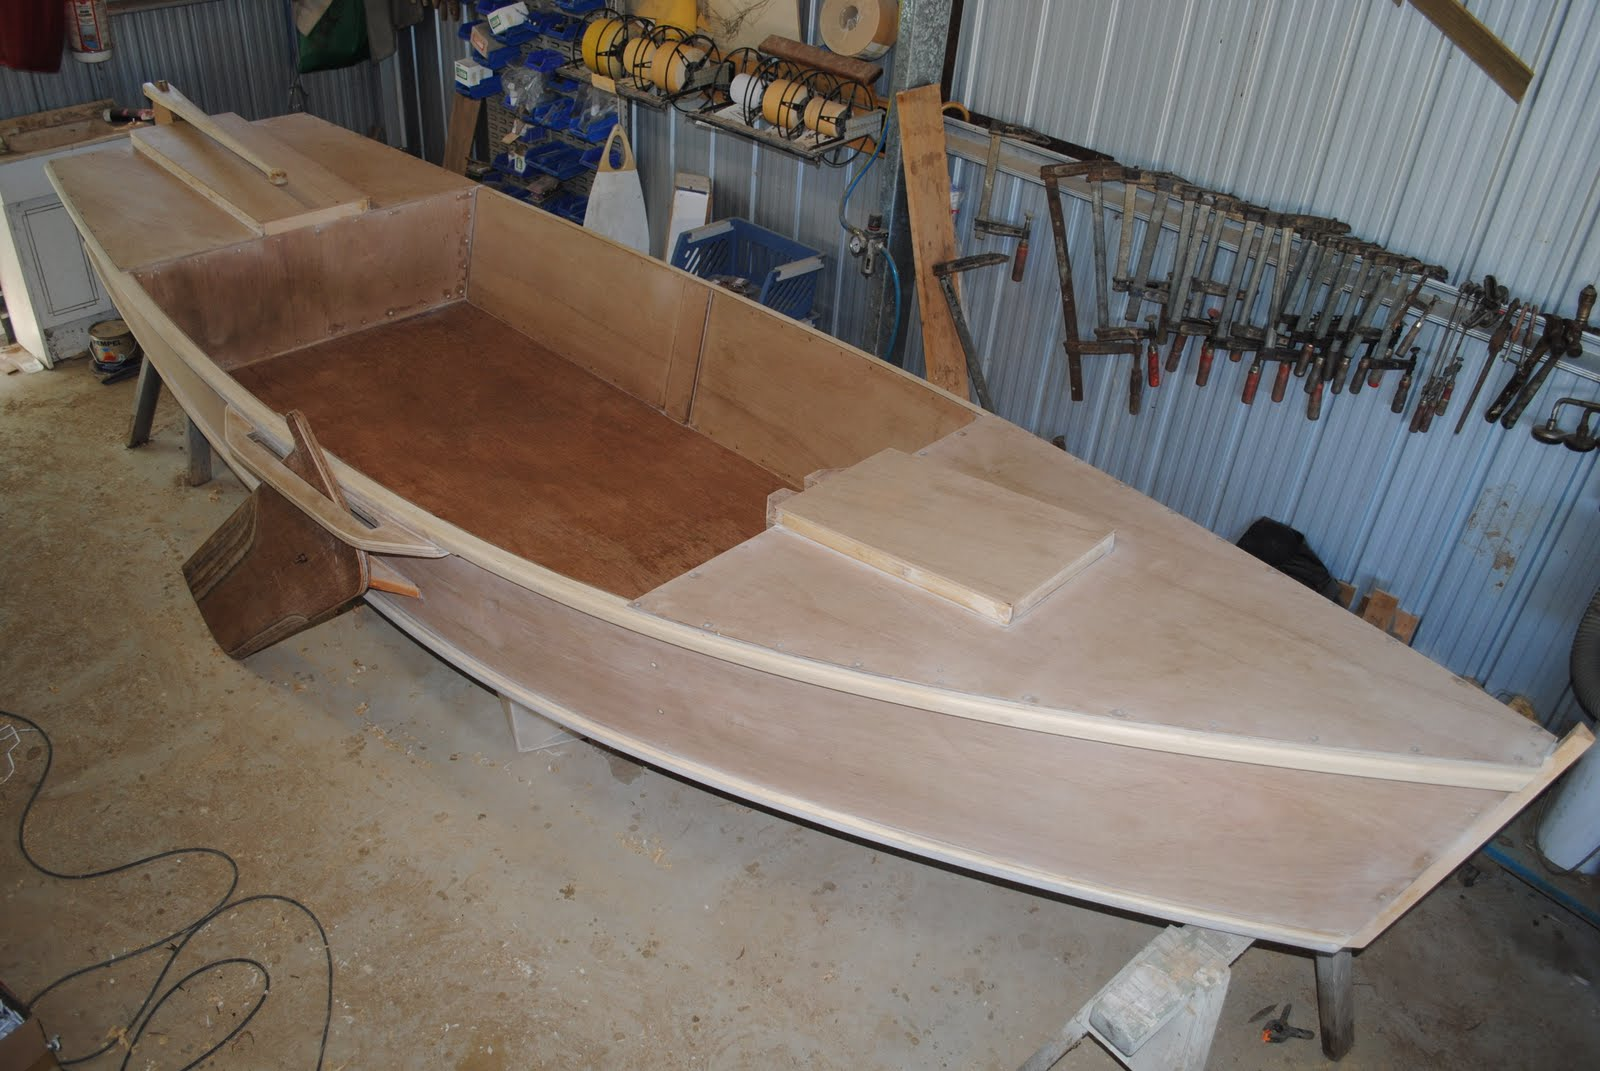 ross lillistone wooden boats photos of a good flat bottomed skiff